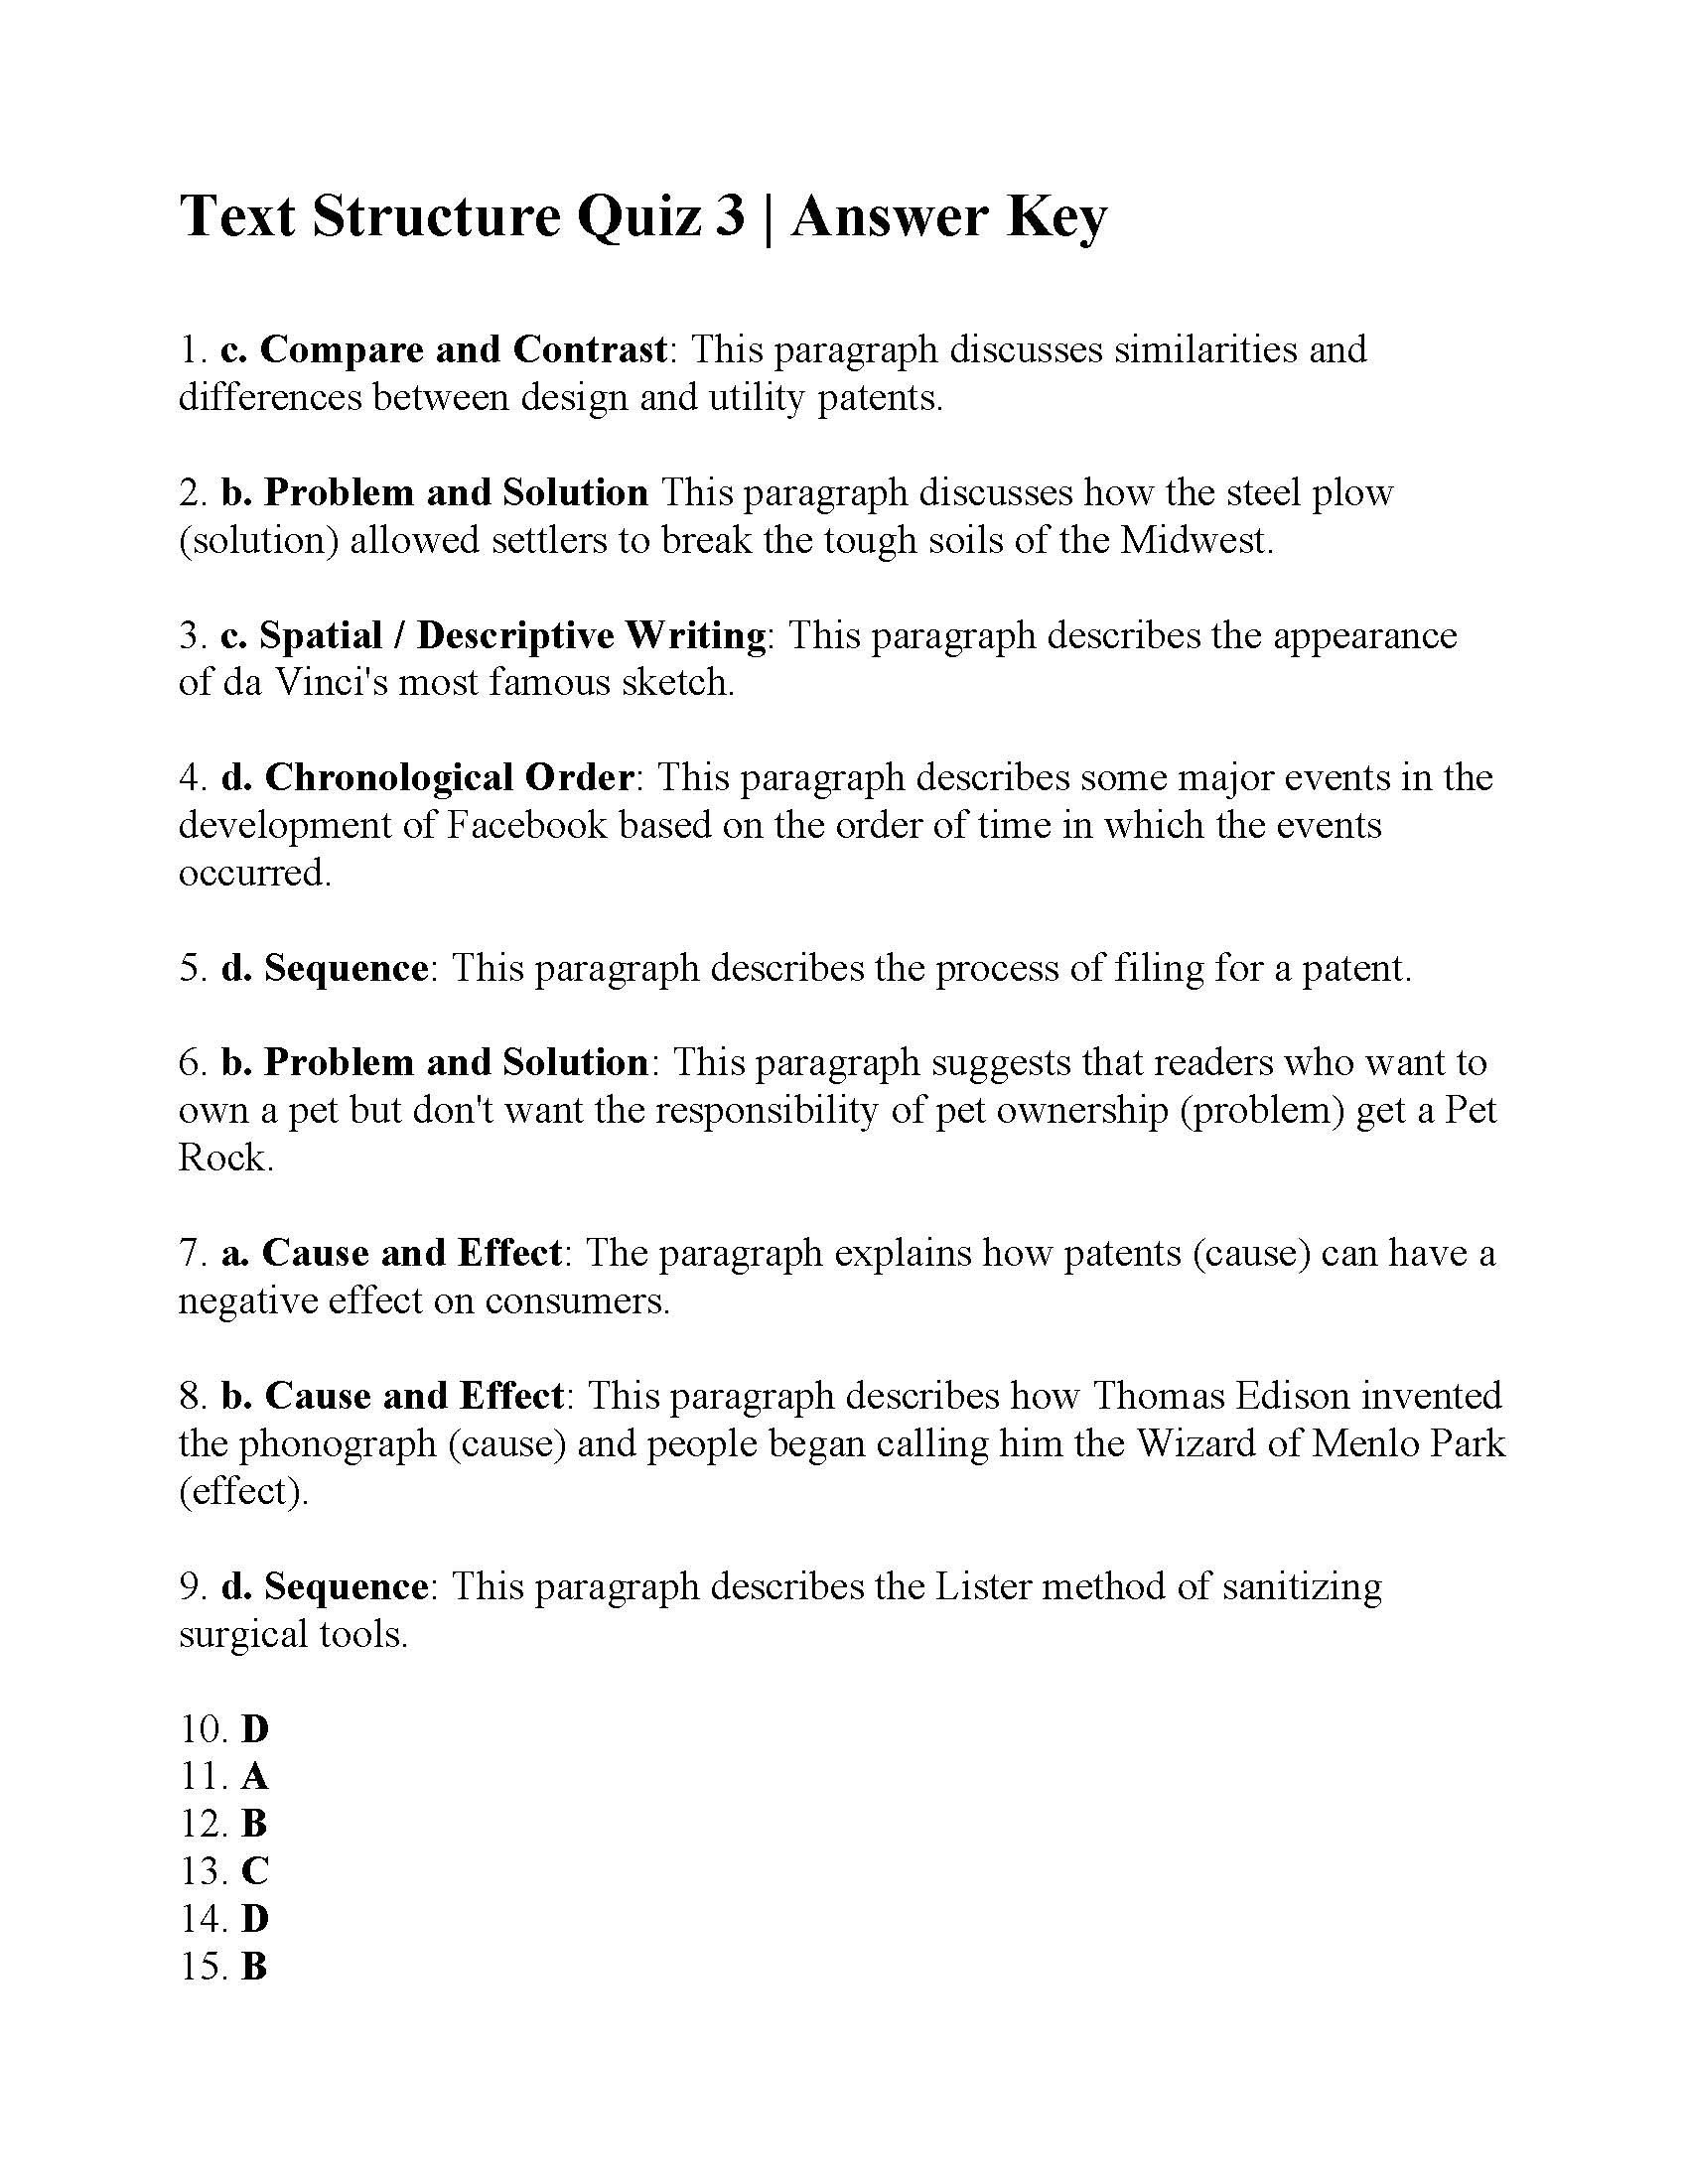 Text Structure Worksheets Grade 4 Text Structure Quiz Answers Ereading Worksheets Math Fact